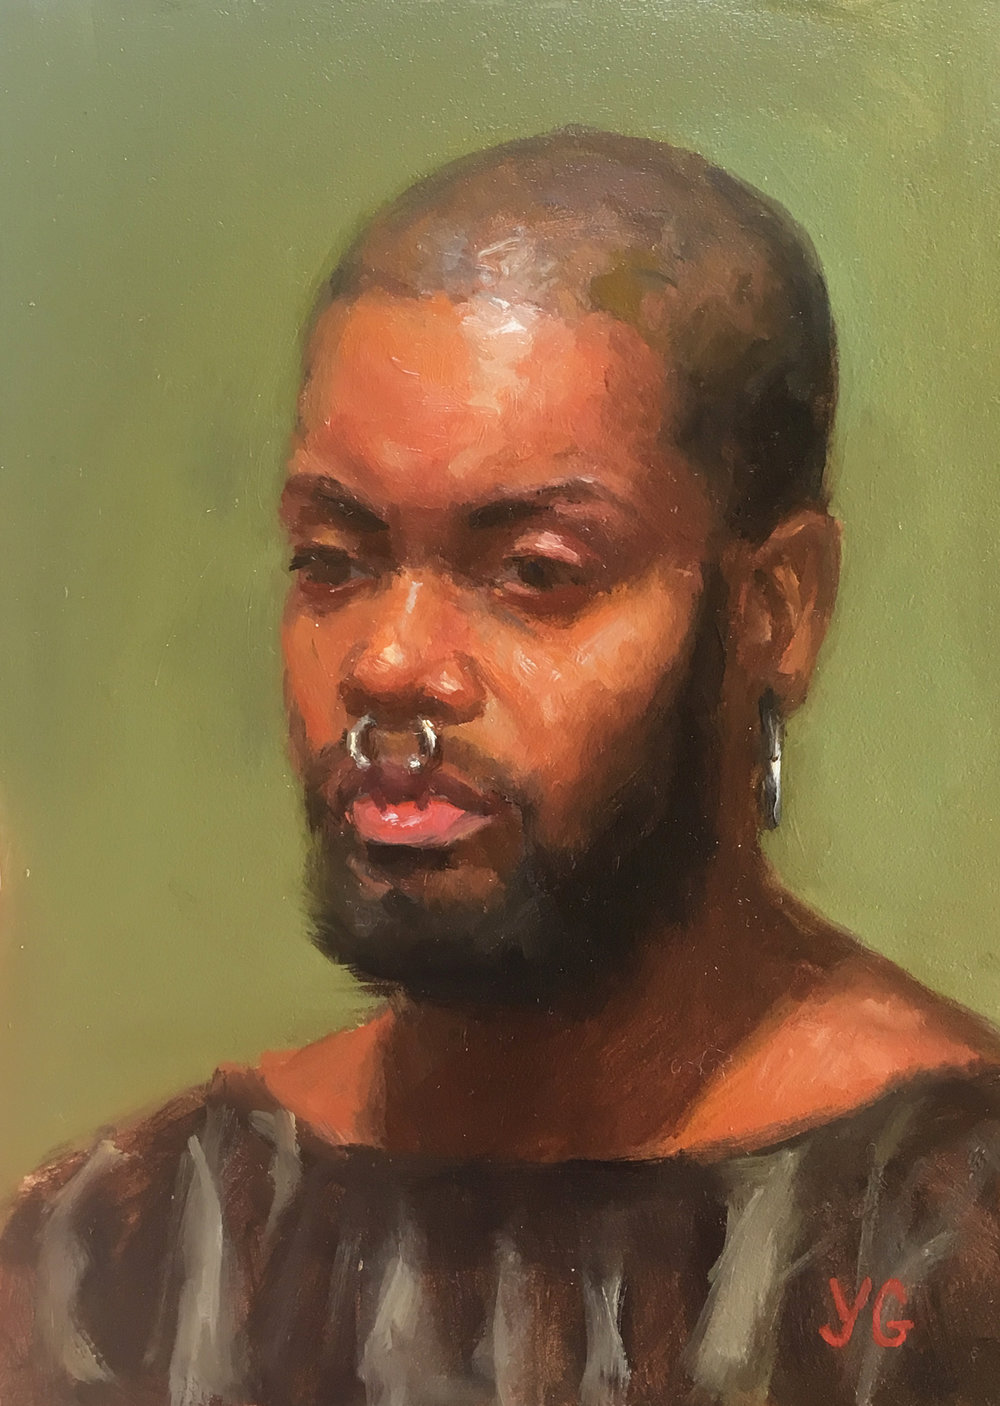 Man Portrait 5x7 Oil on board